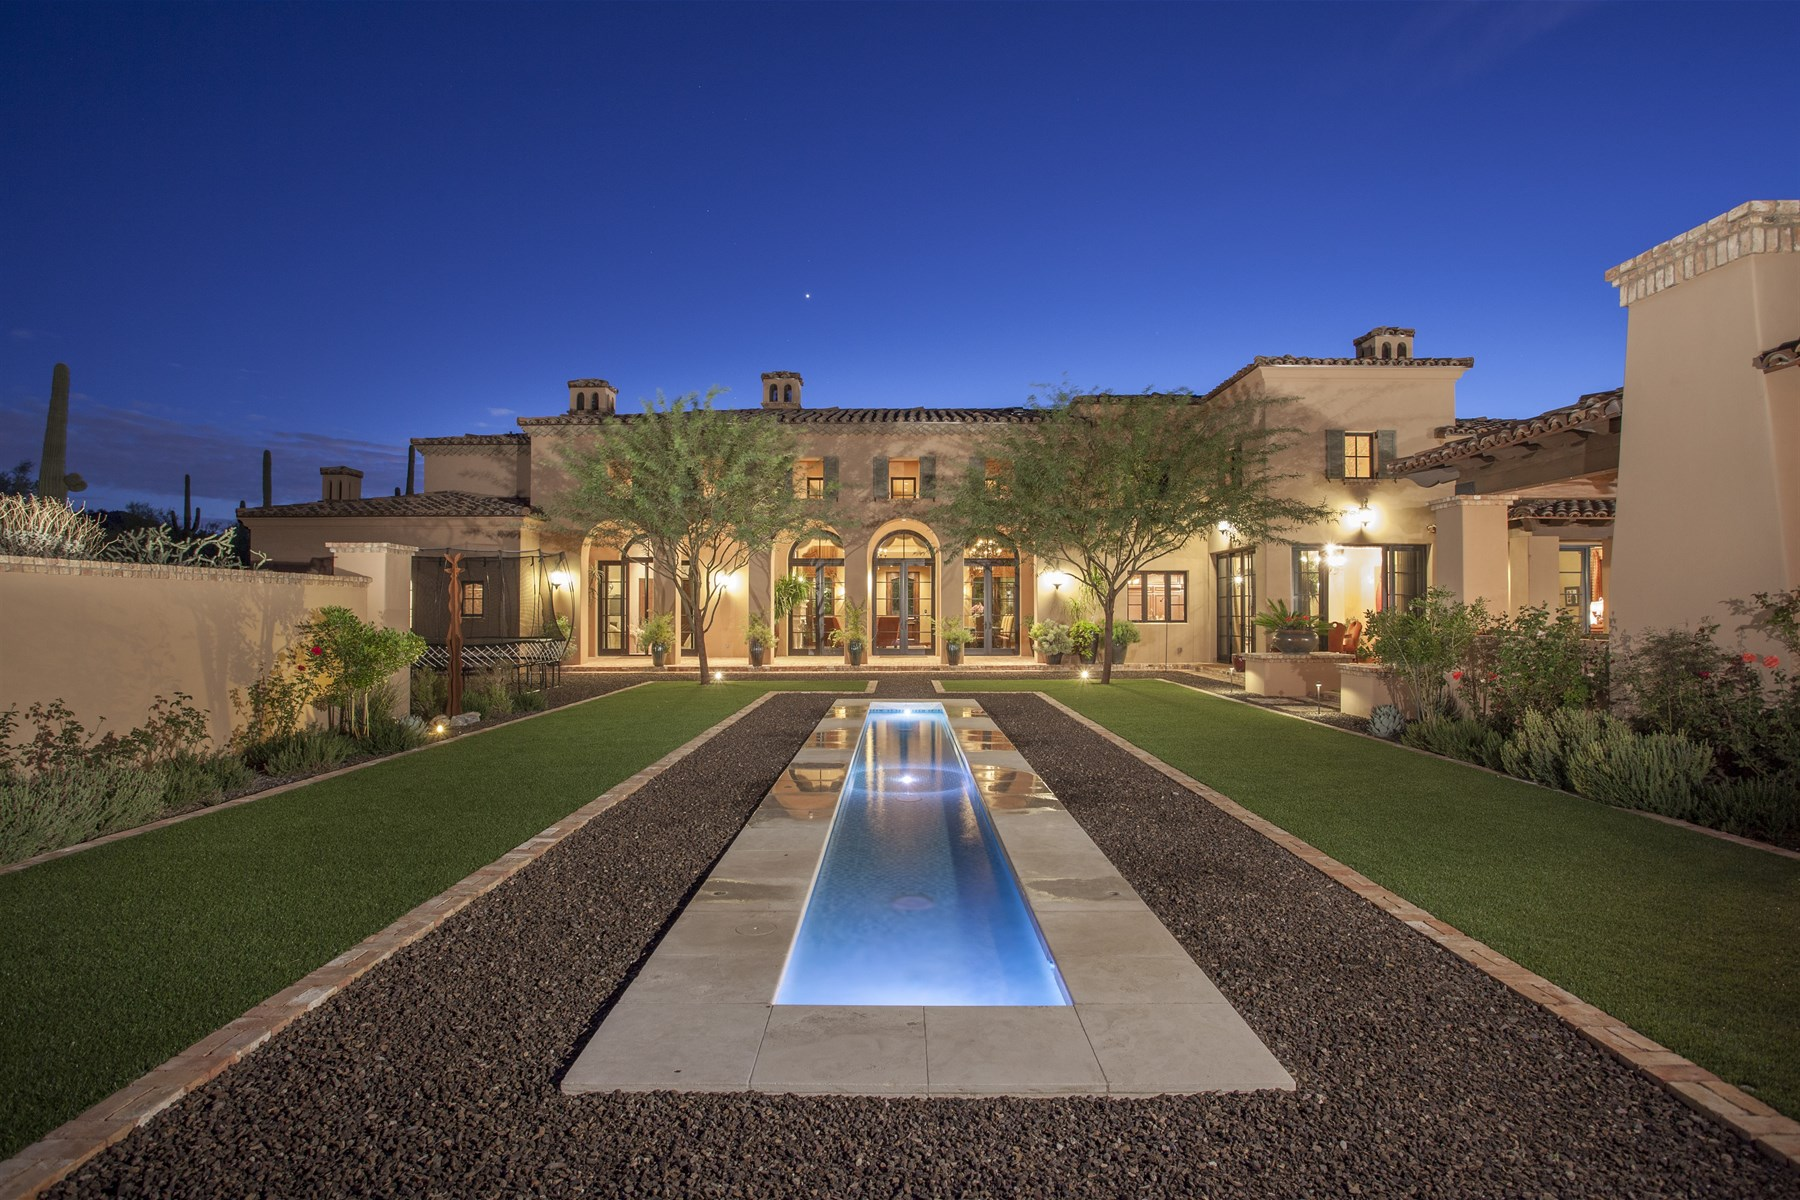 Property For Sale at Beautifully Crafted Luxury Estate in Guard Gated Silverleaf's Upper Canyon